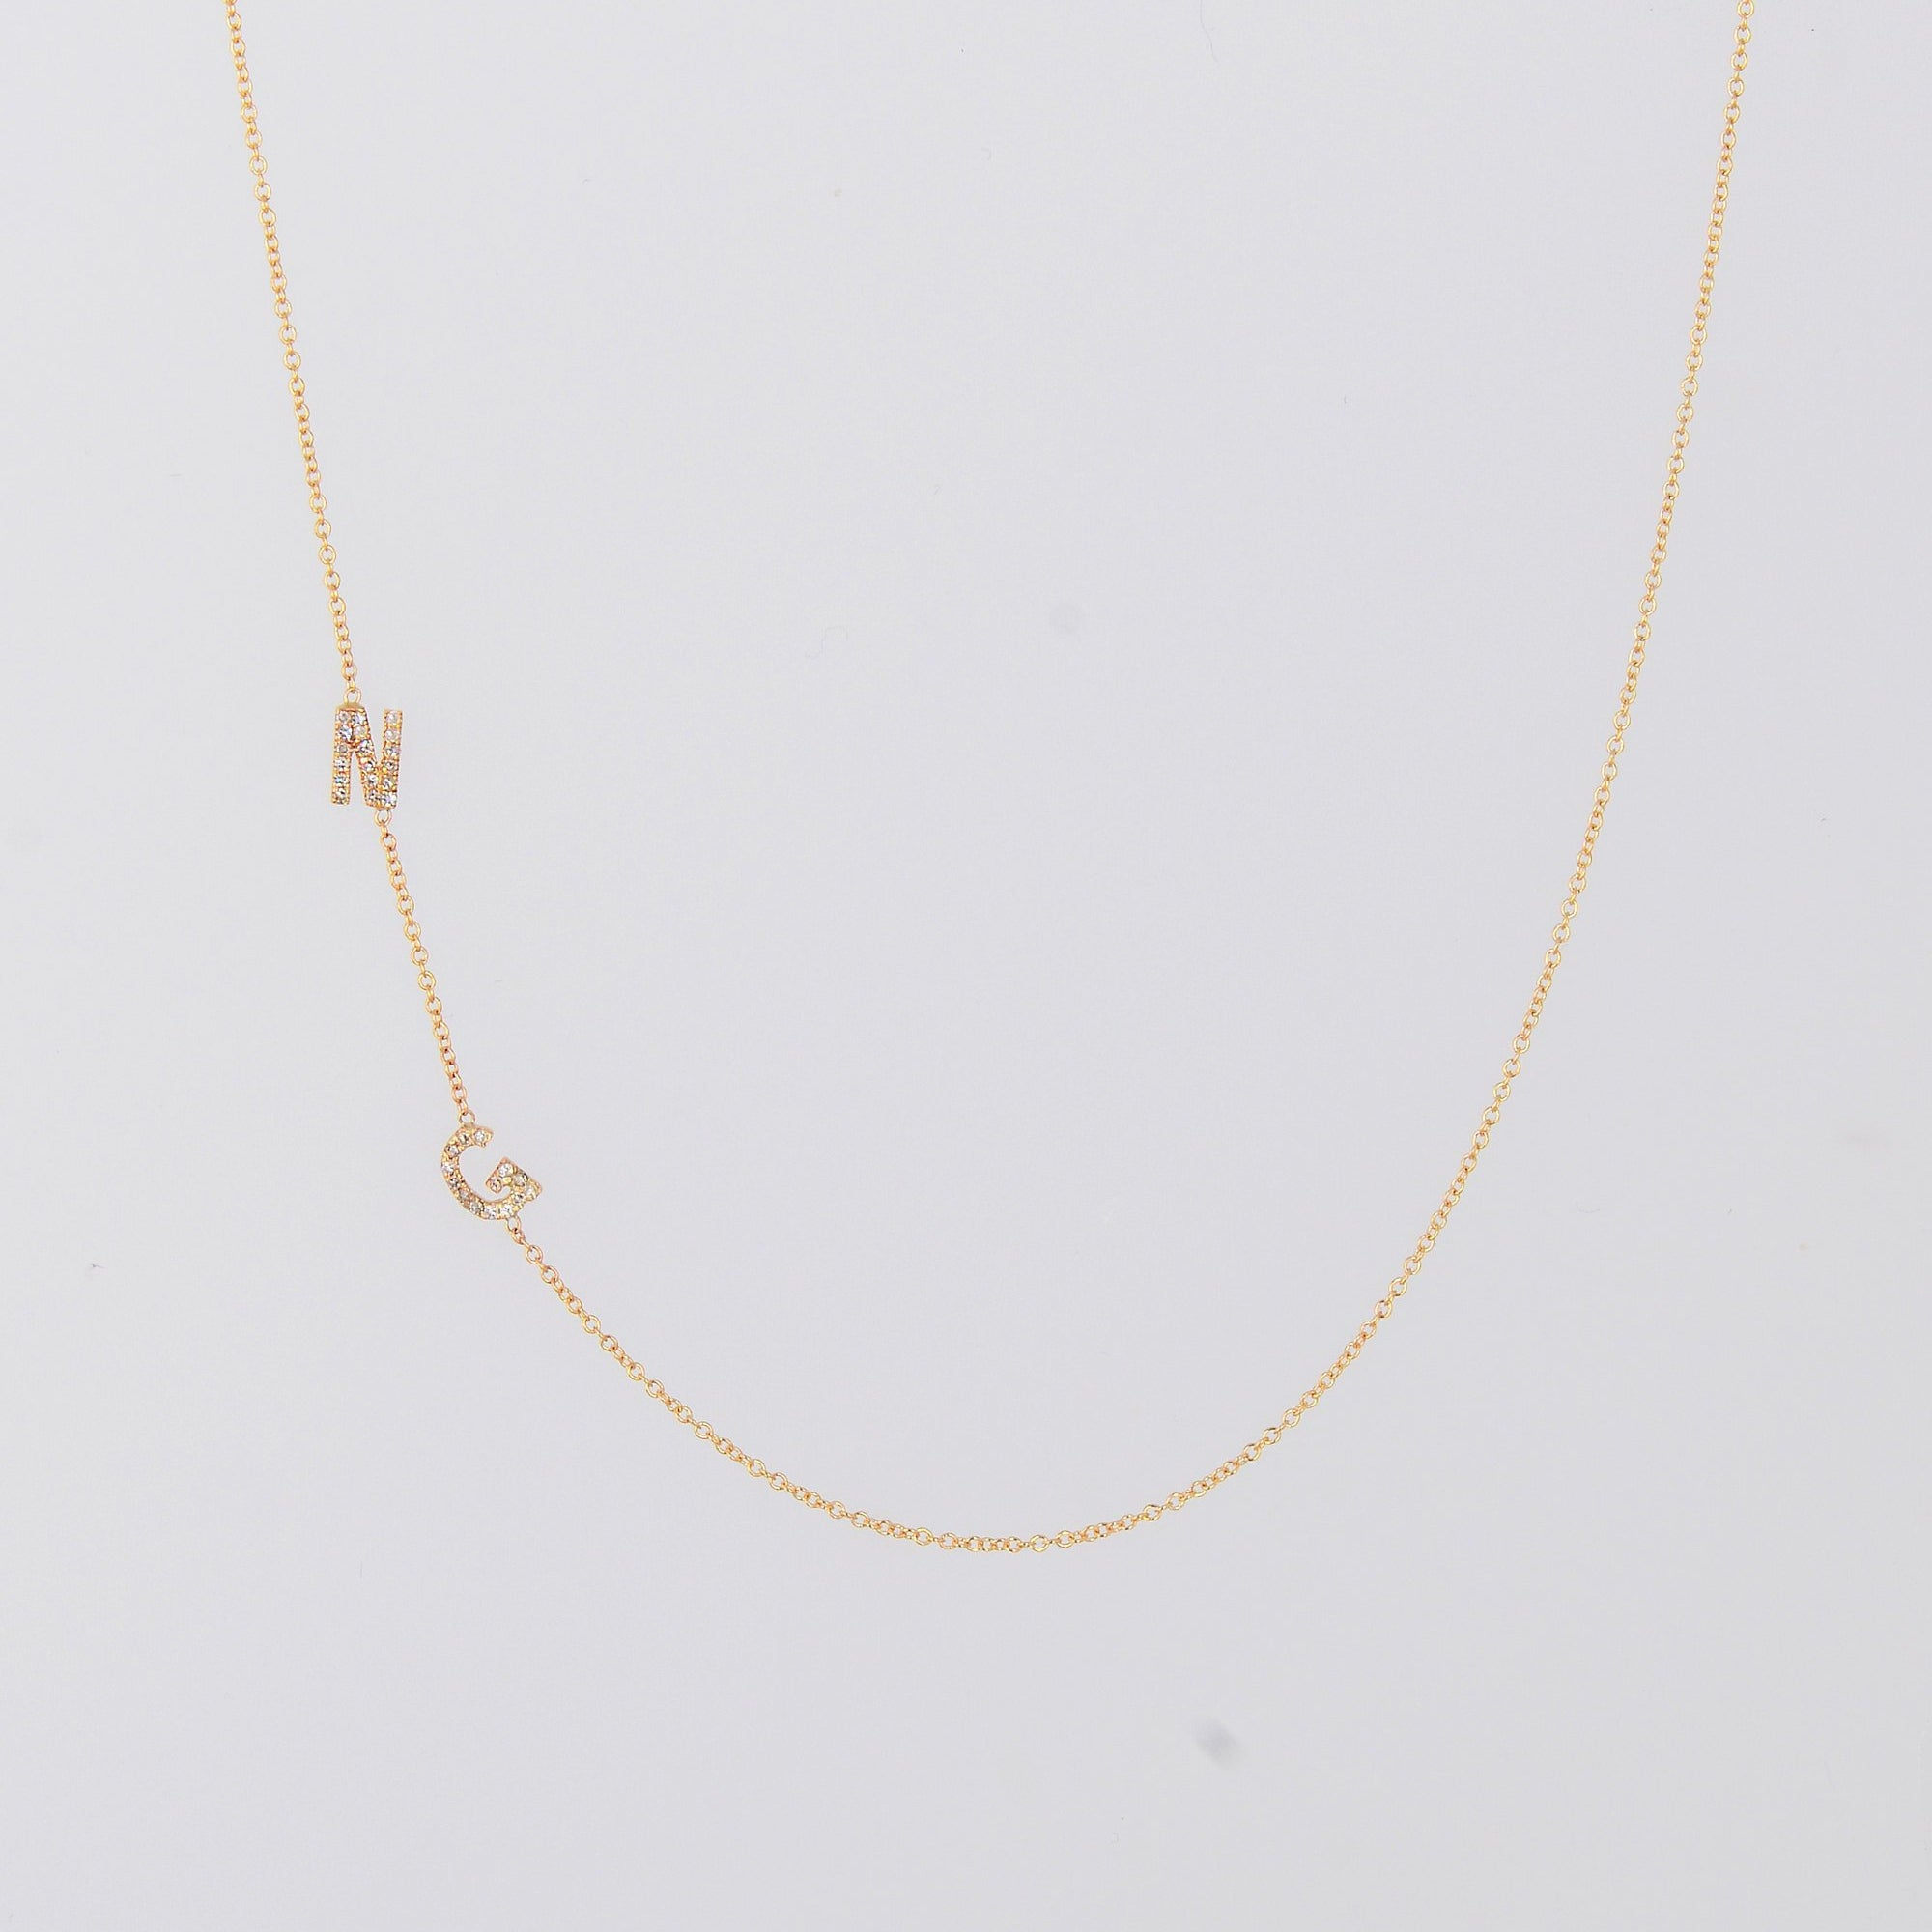 Meghan Markle Initial Necklace, Asymmetrical Initials Necklace